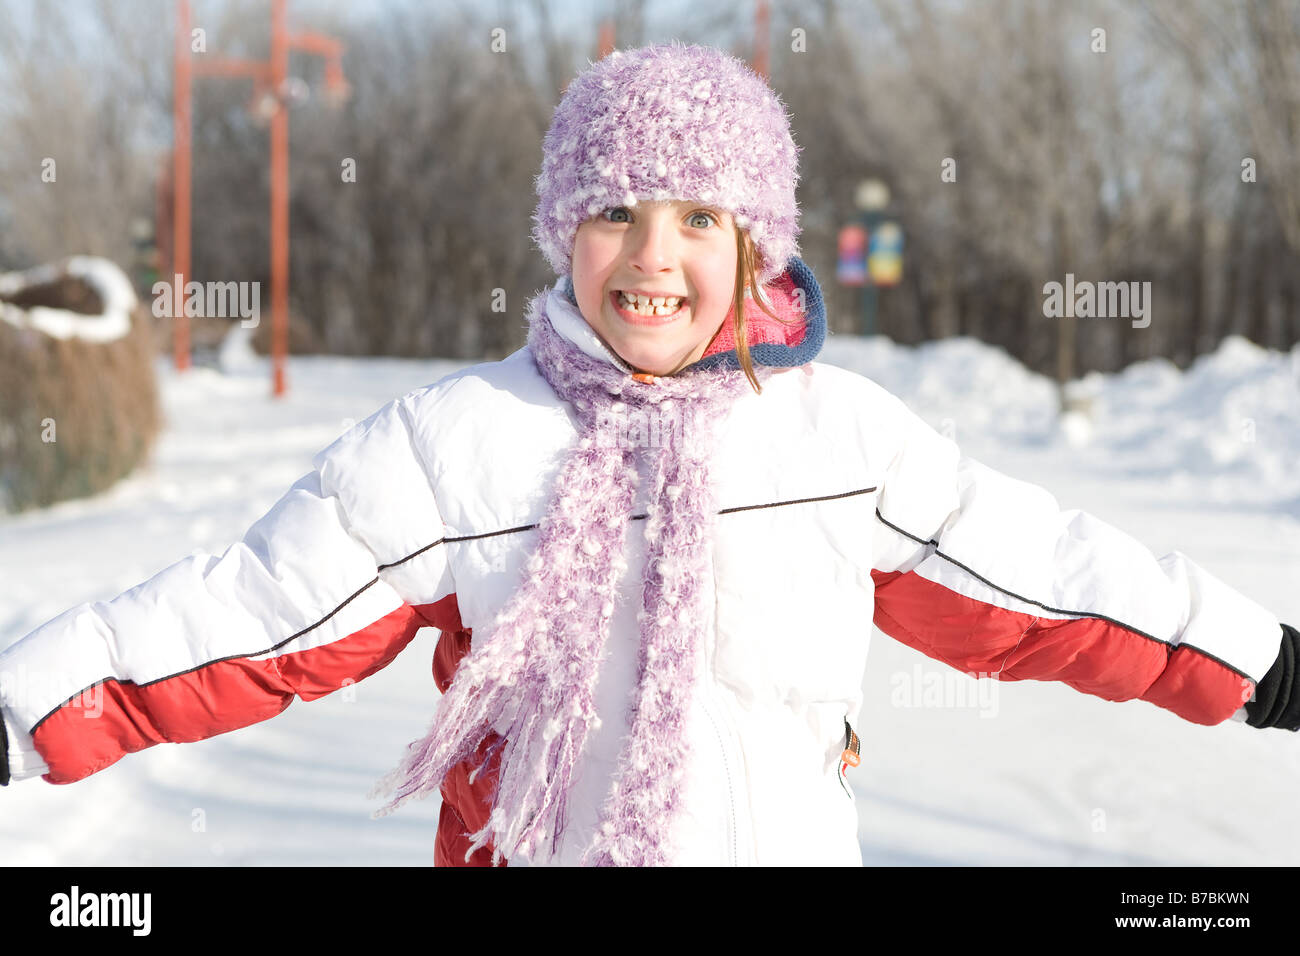 9 year old girl pulls a face, outdoor winter, The Forks, Winnipeg, Canada - Stock Image